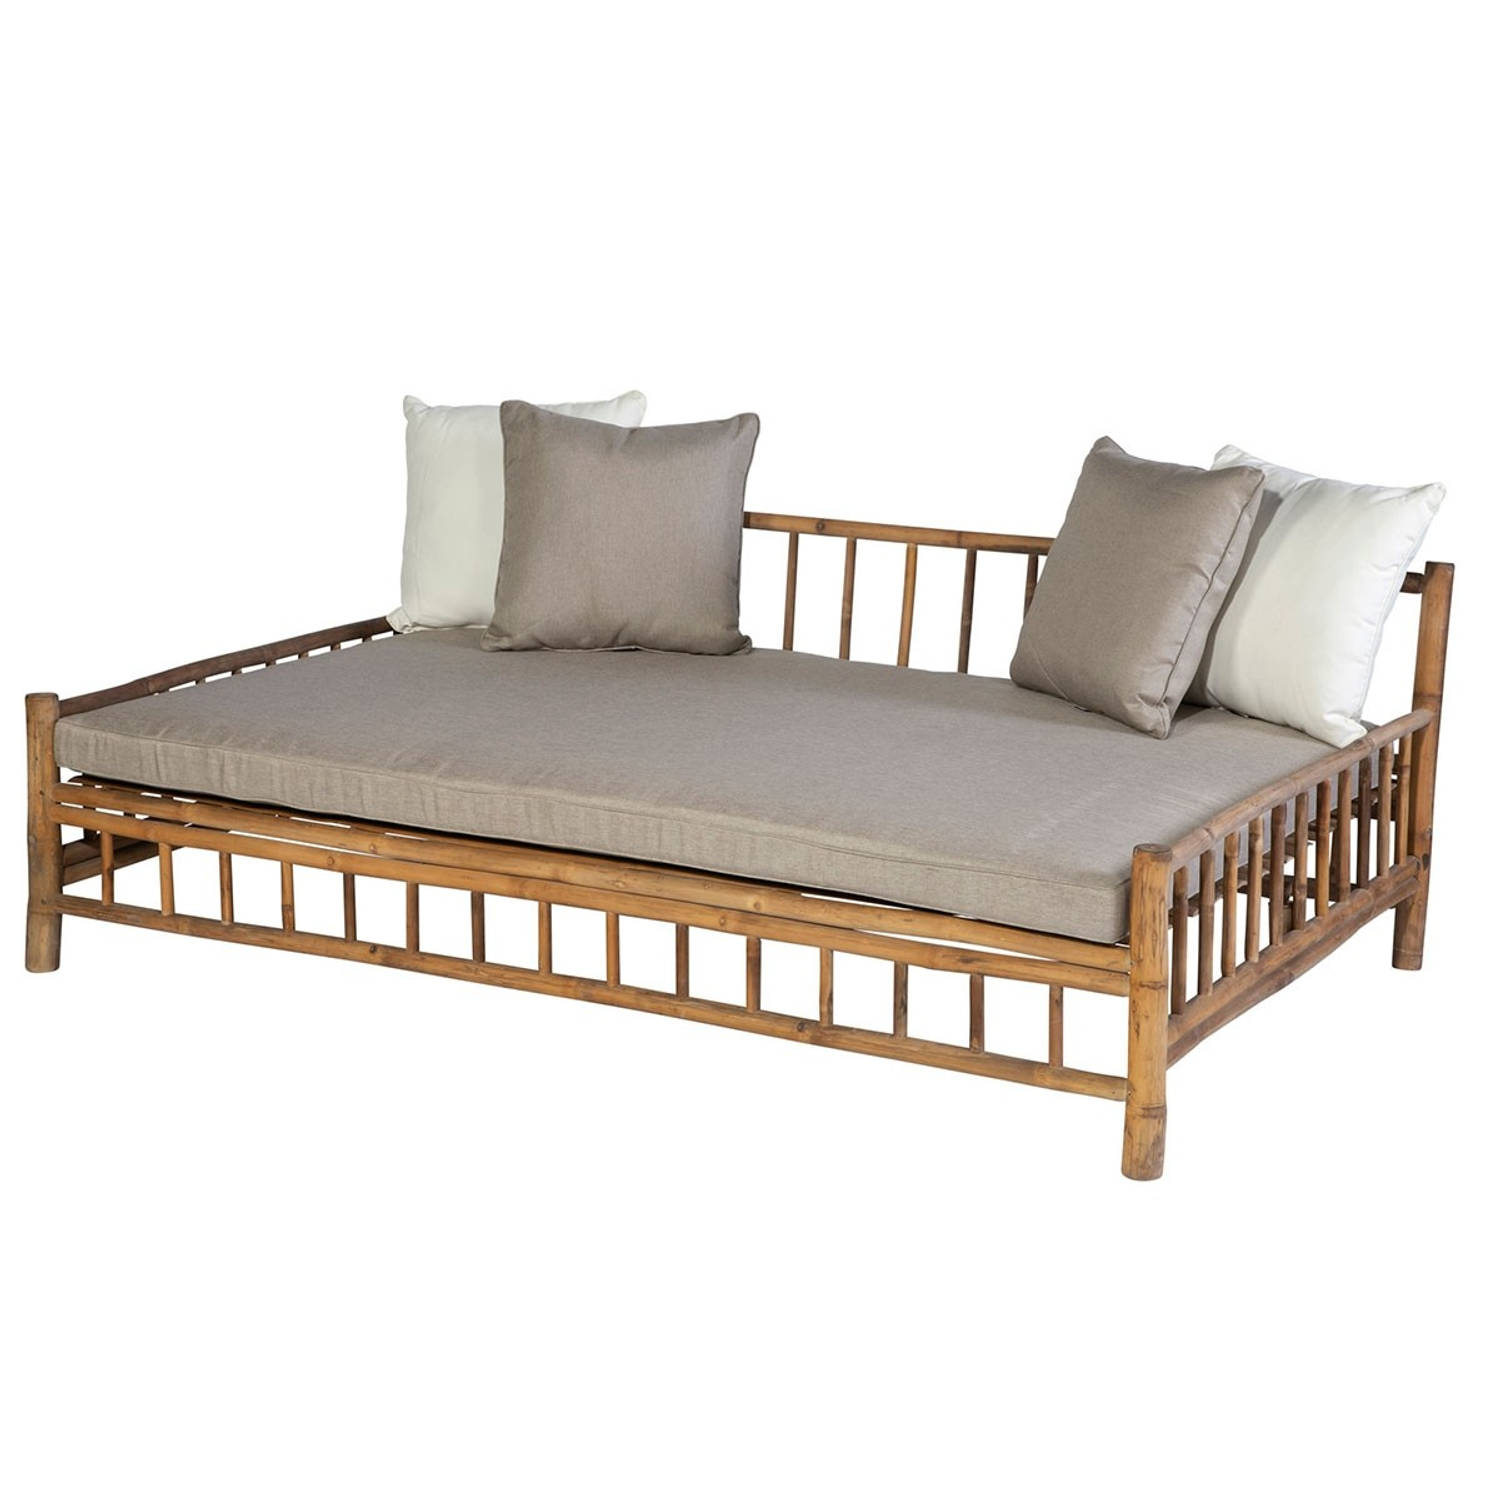 Persoon Exotan Bamboe lounge daybed bamboo natural finish